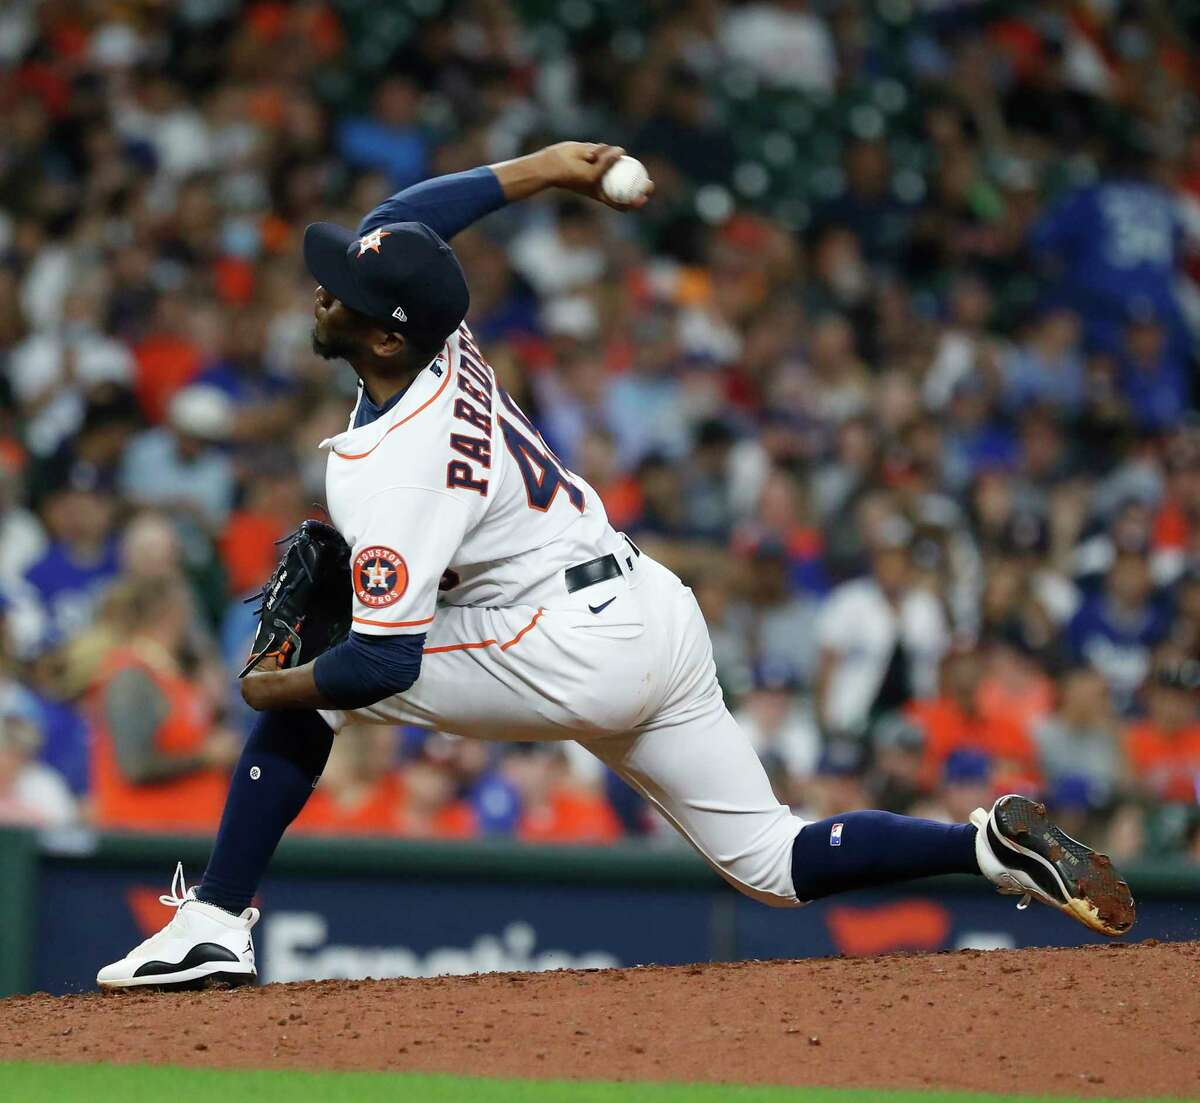 Houston Astros relief pitcher Enoli Paredes (48) throws to Los Angeles Dodgers Justin Turner during the seventh inning of an MLB baseball game at Minute Maid Park, Tuesday, May 25, 2021, in Houston.